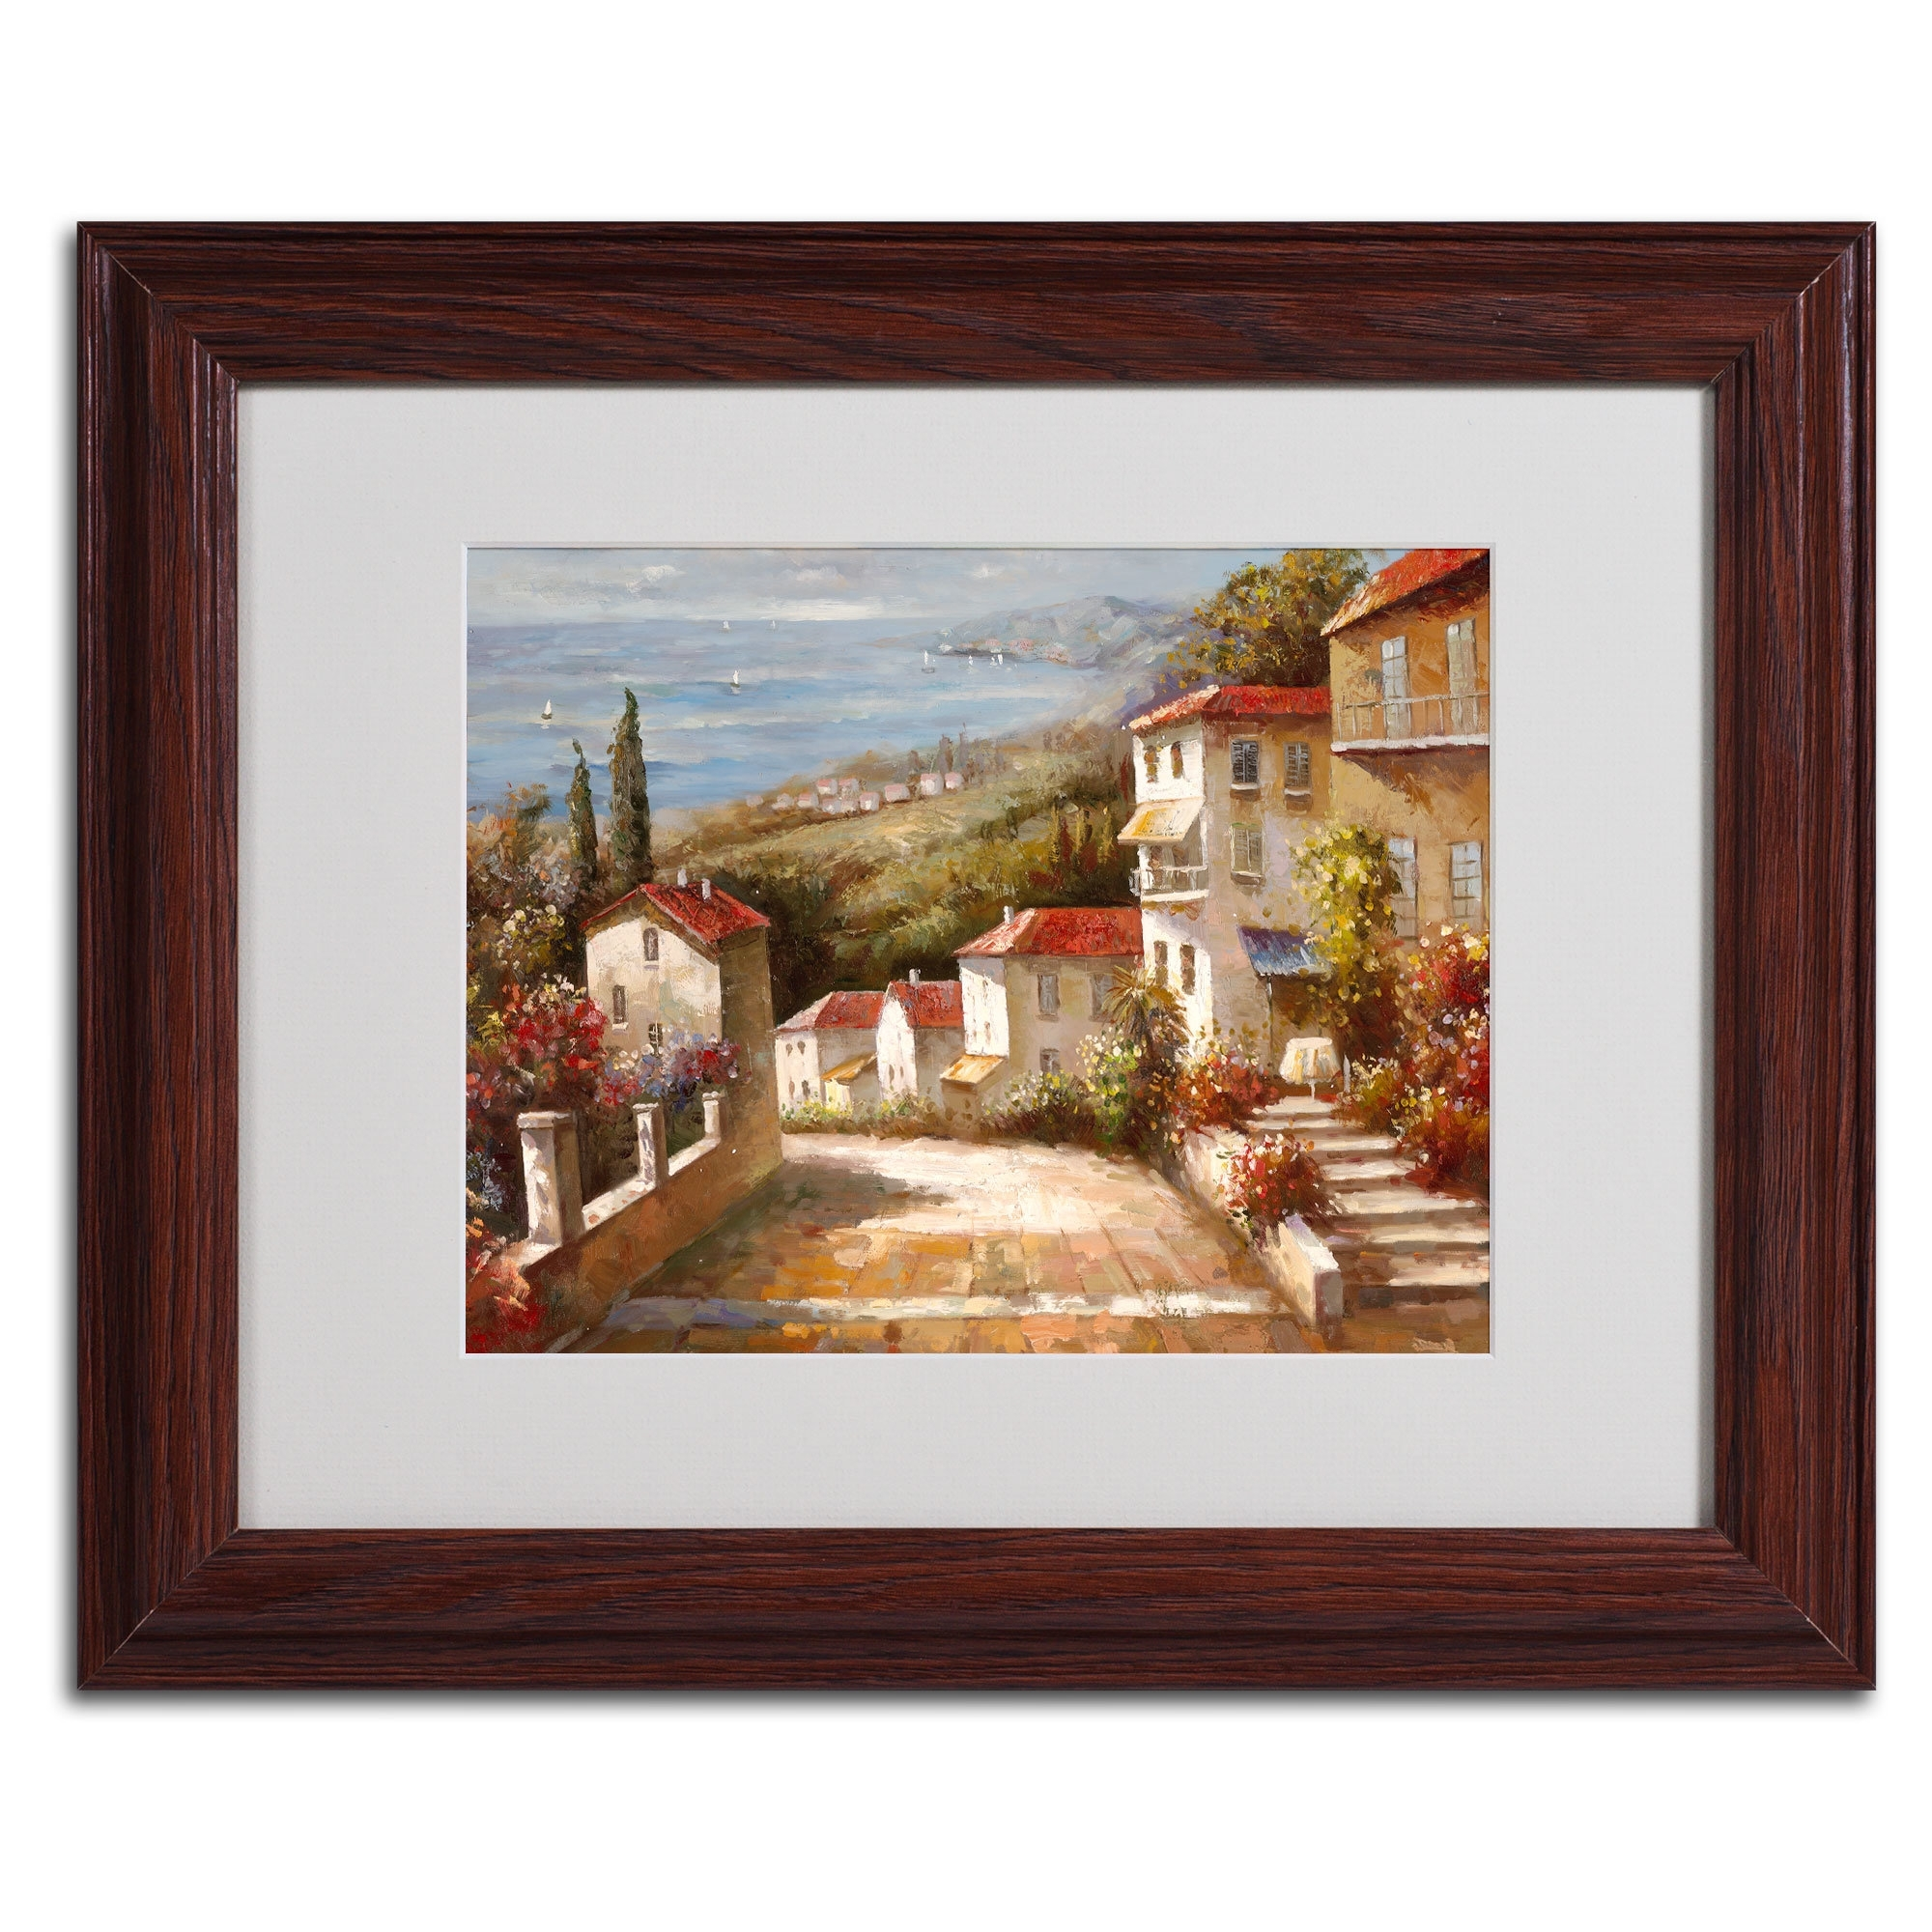 Trademark Art 'home In Tuscany'joval Framed Painting Print With Regard To Recent Joval Canvas Wall Art (View 3 of 15)